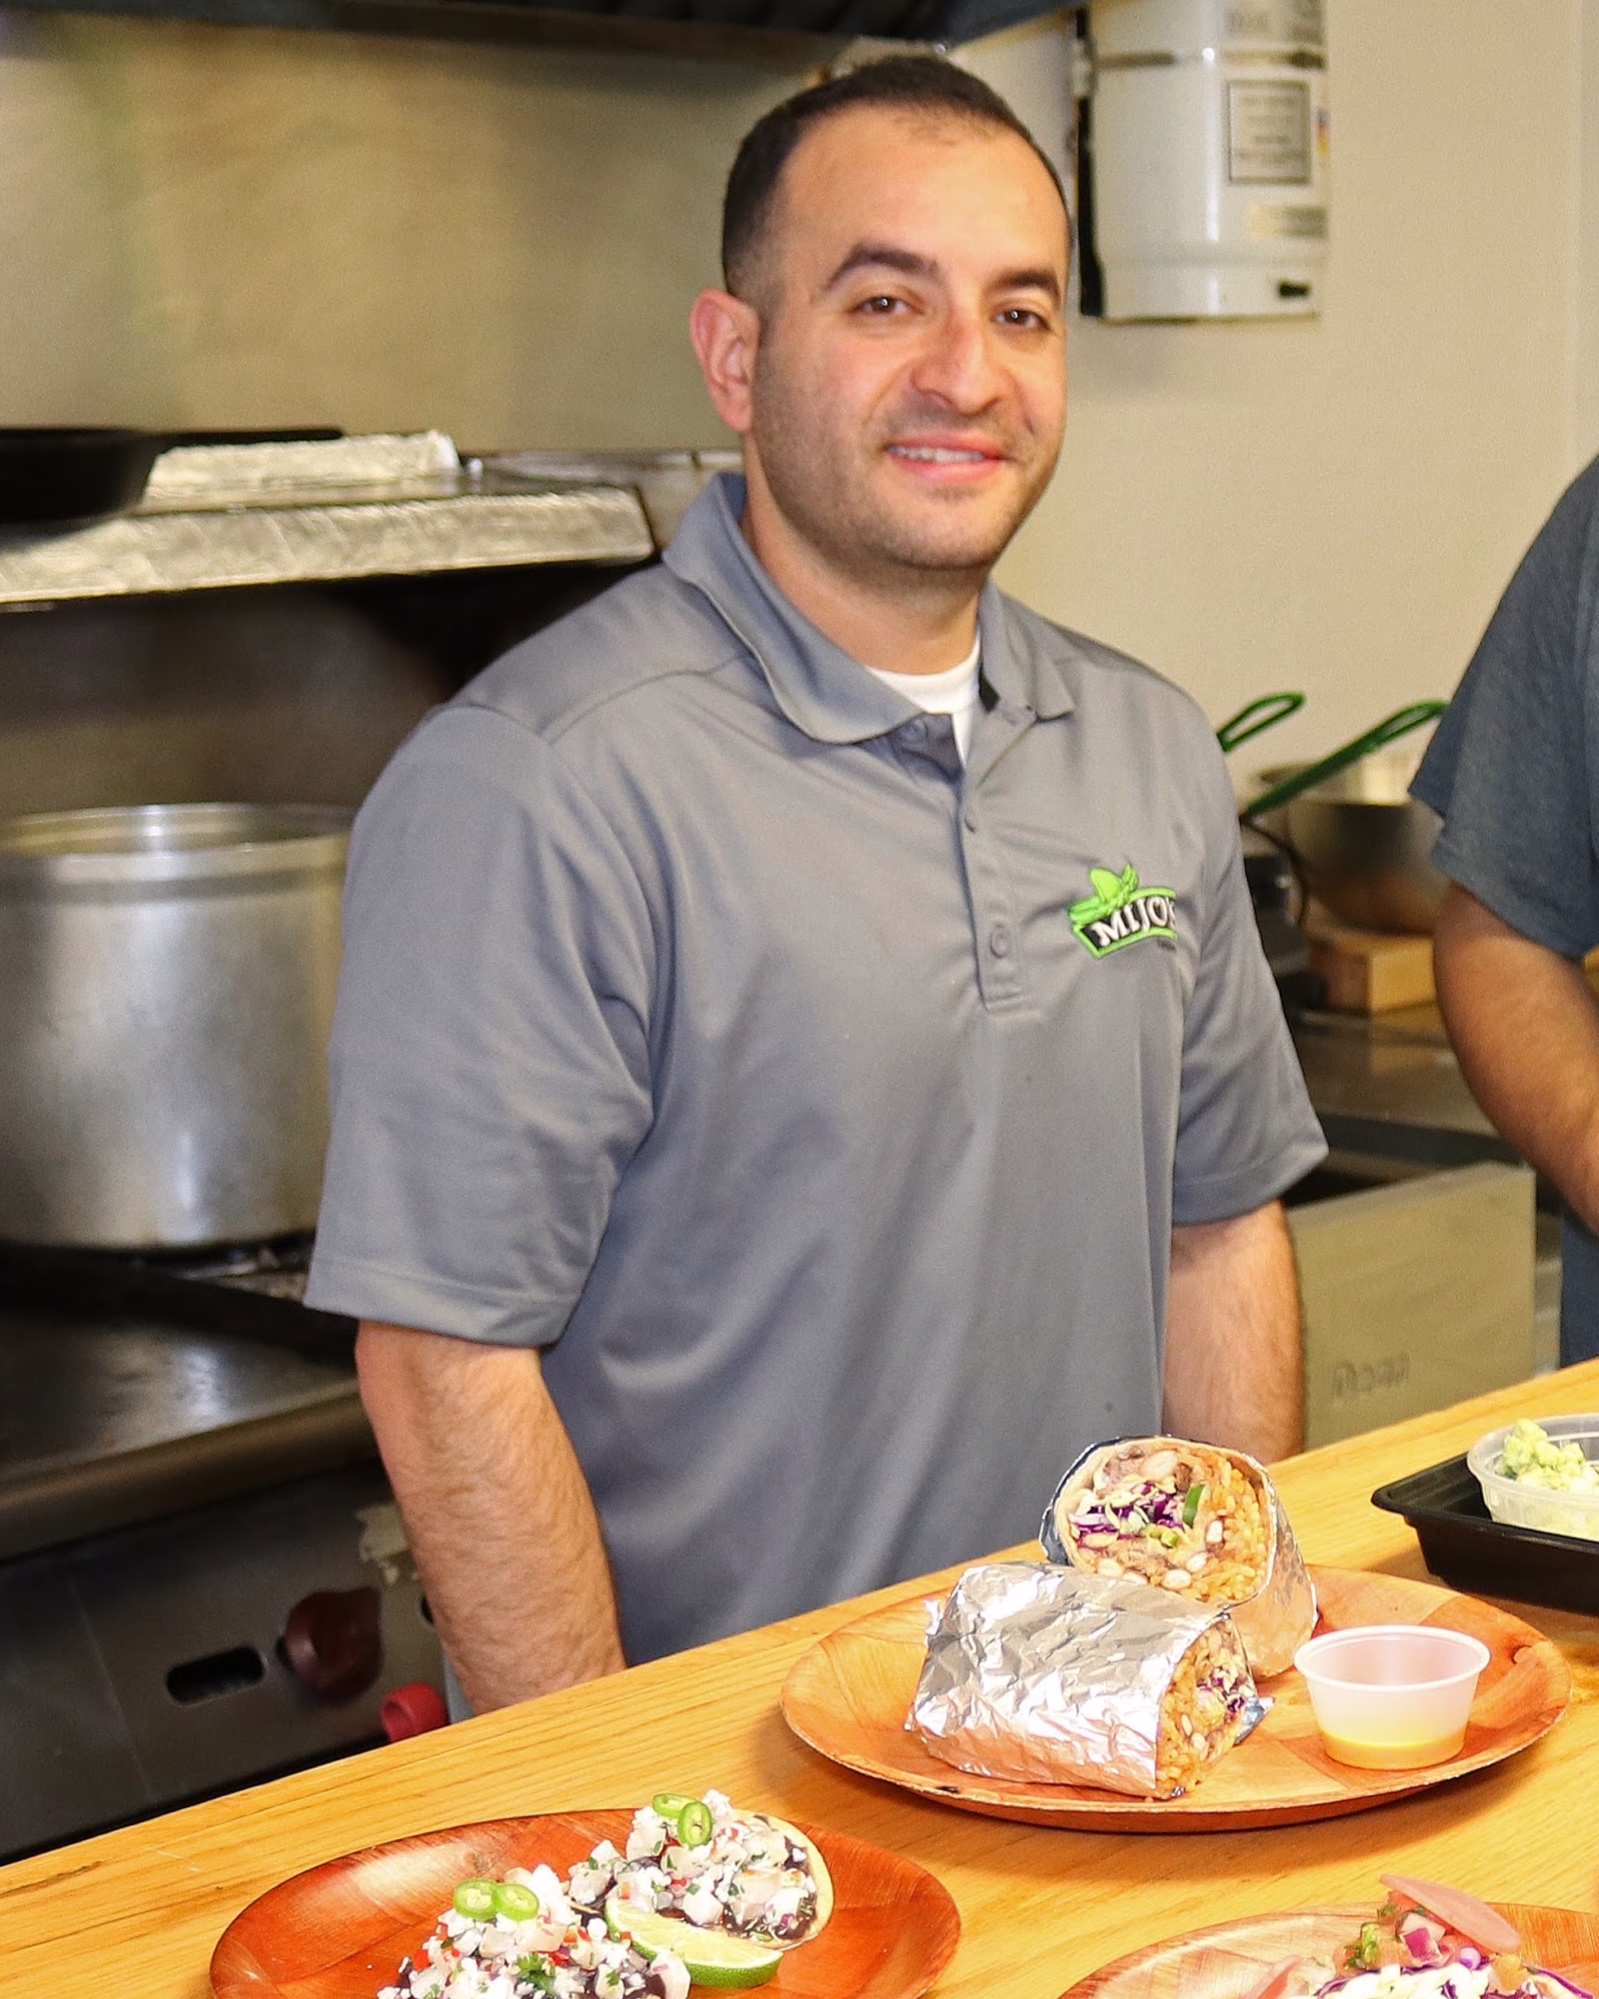 Chef+_+Owner+-+Anthony+Guajardo.jpg